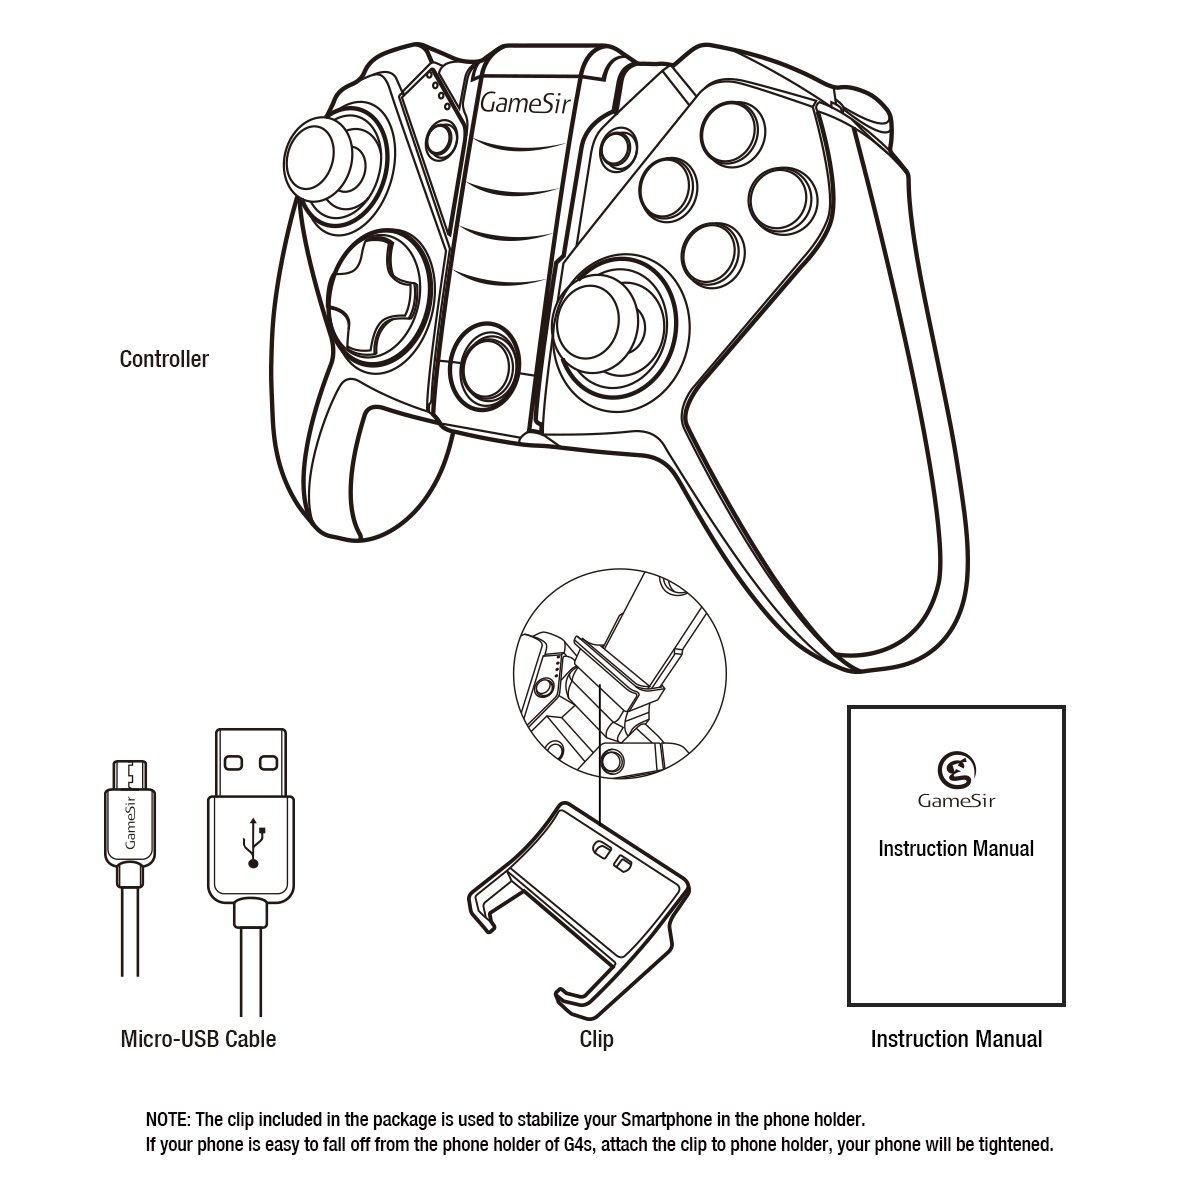 g4 wireless gaming controller for android smartphone unboxed iPhone USB Wiring-Diagram 36 99 from amazon